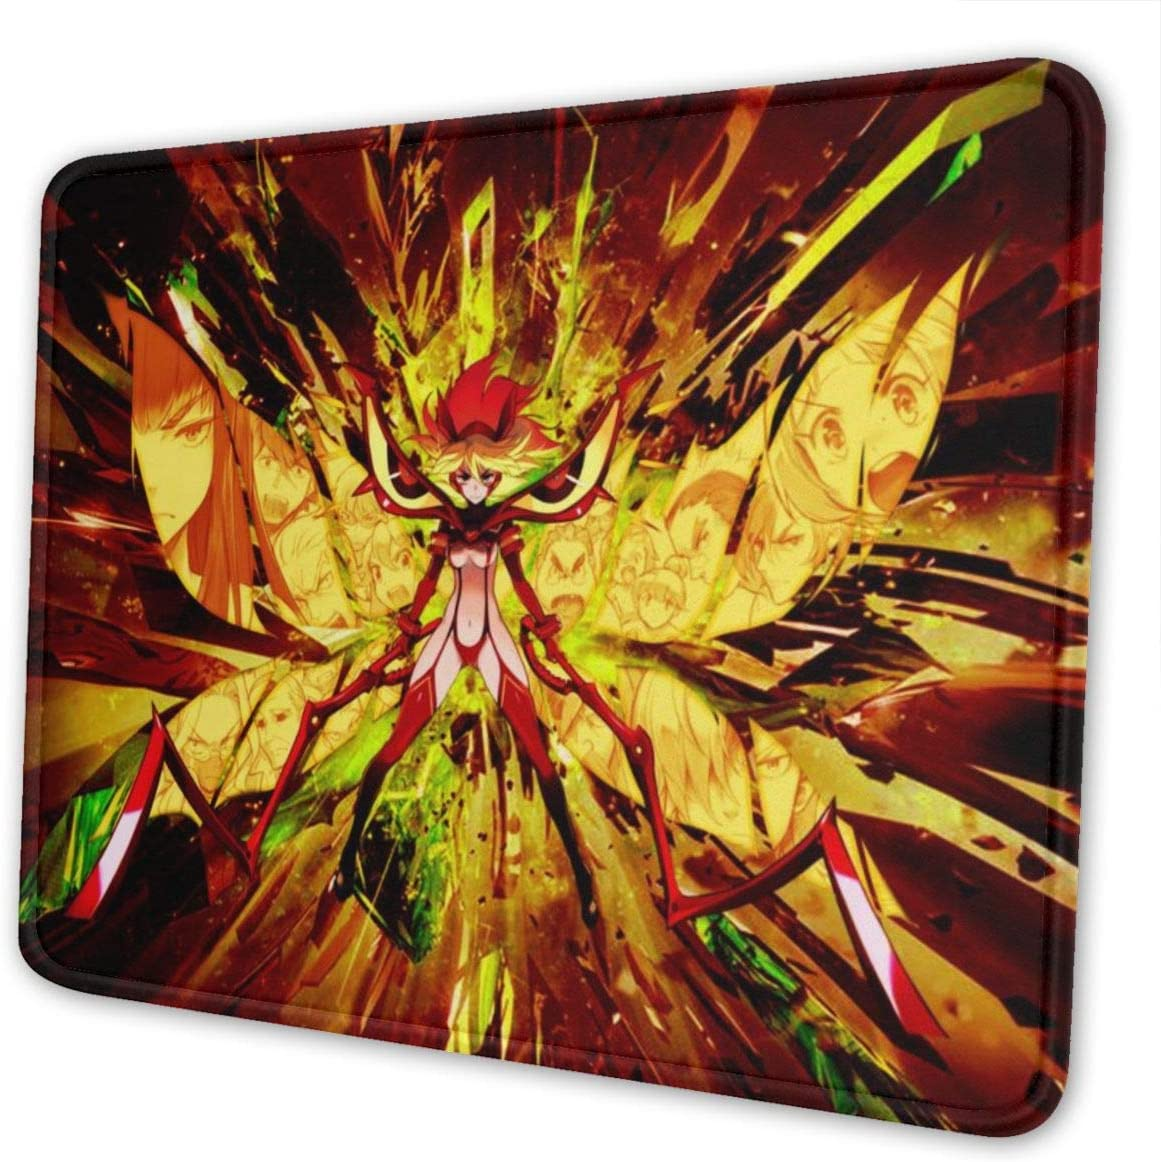 Hunter X Hunter Gon /& Killua Mouse Pad Non-Slip Gaming Mouse Pad with Stitched Edge Computer PC Mousepad Rubber Base for Office Home